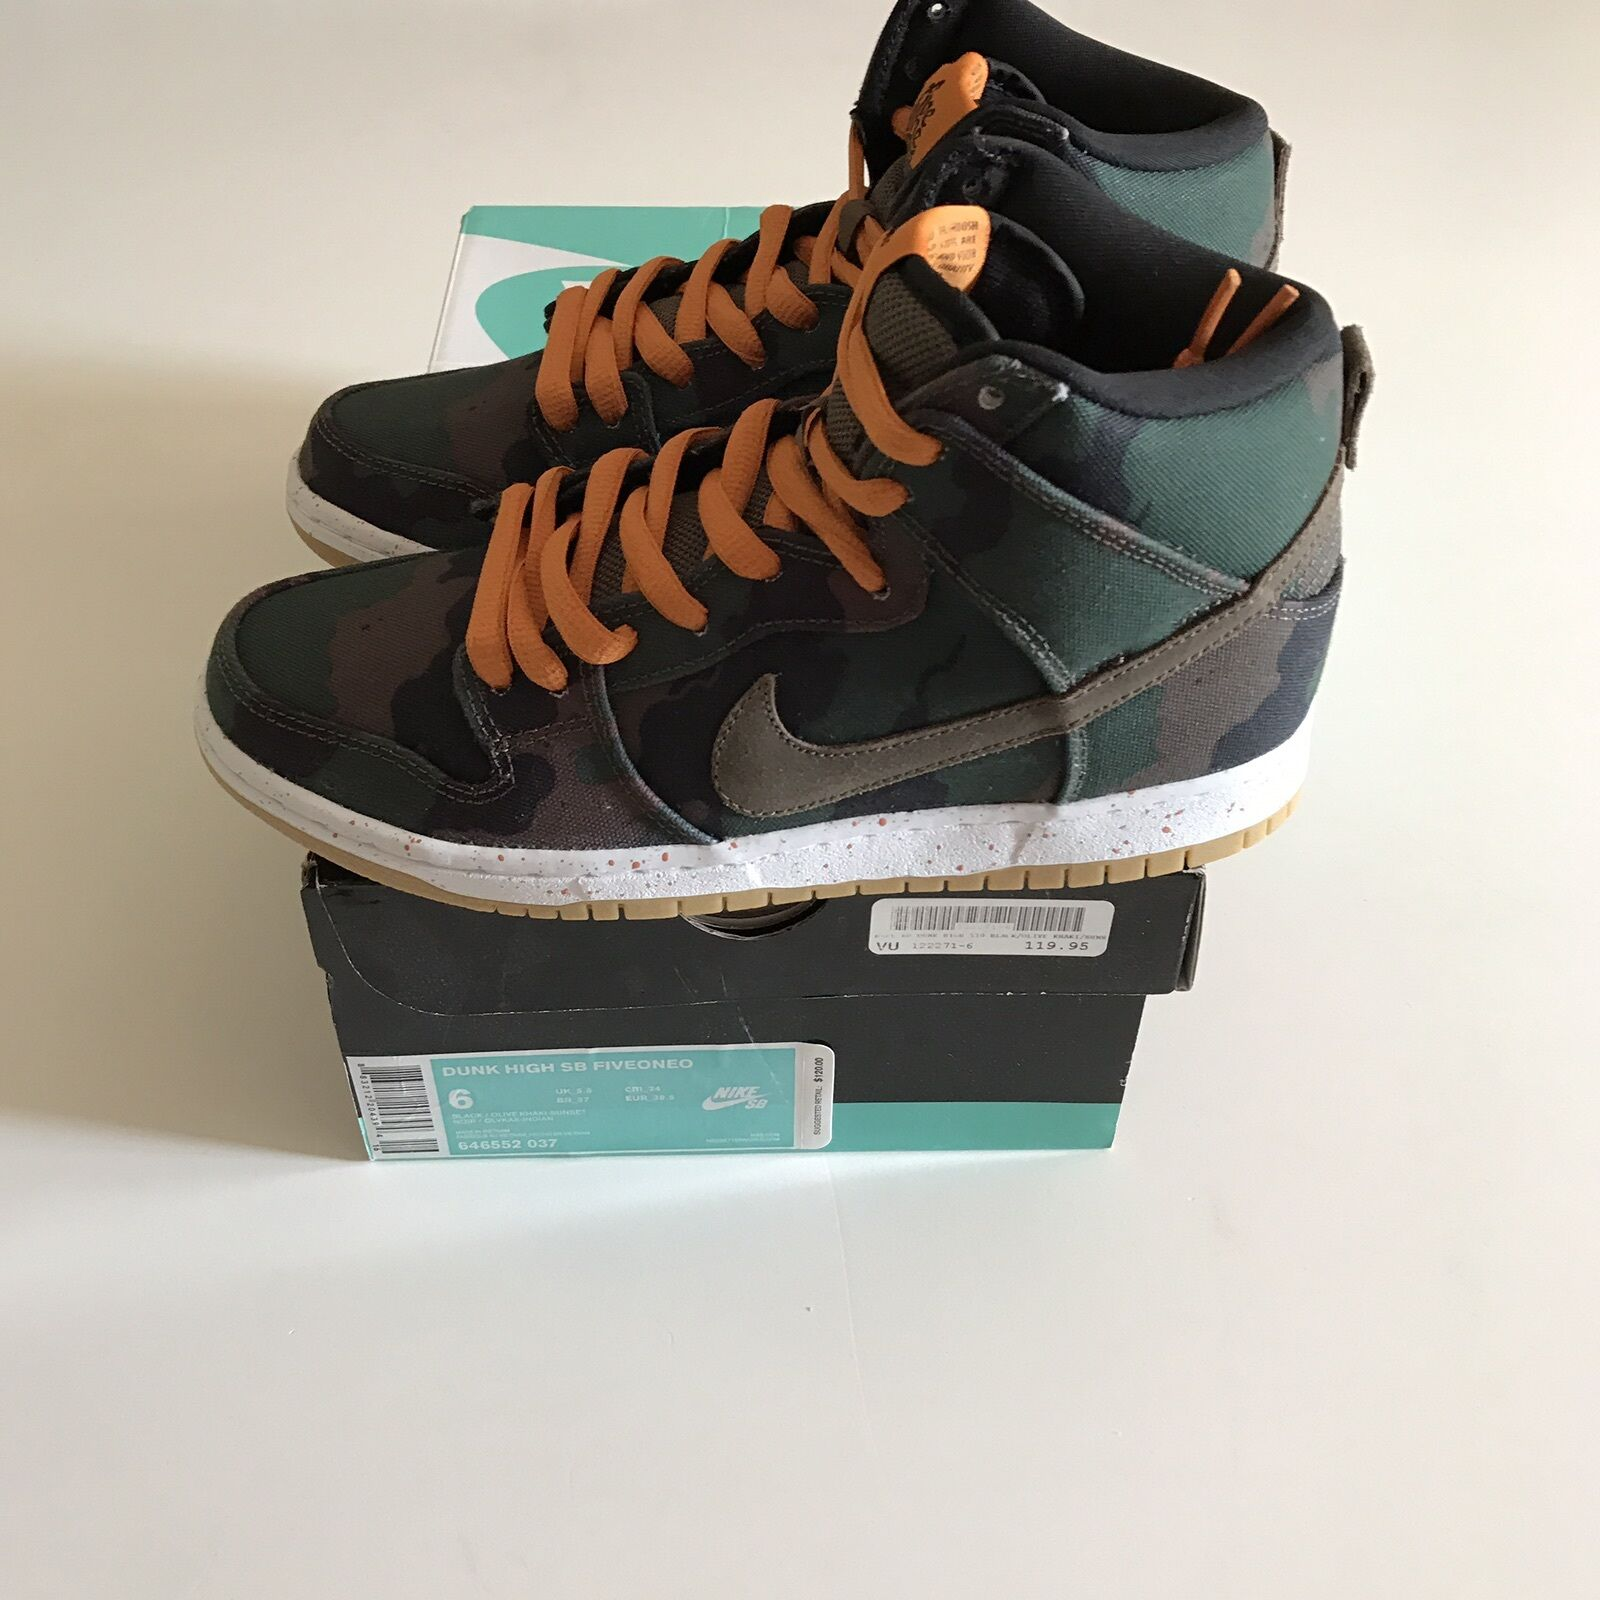 e74b3b593af7 NIKE SB DUNK WHAT THE FIVEONE0 646551-037 Size Size Size 6 NEW THOMAS  CAMPBELL